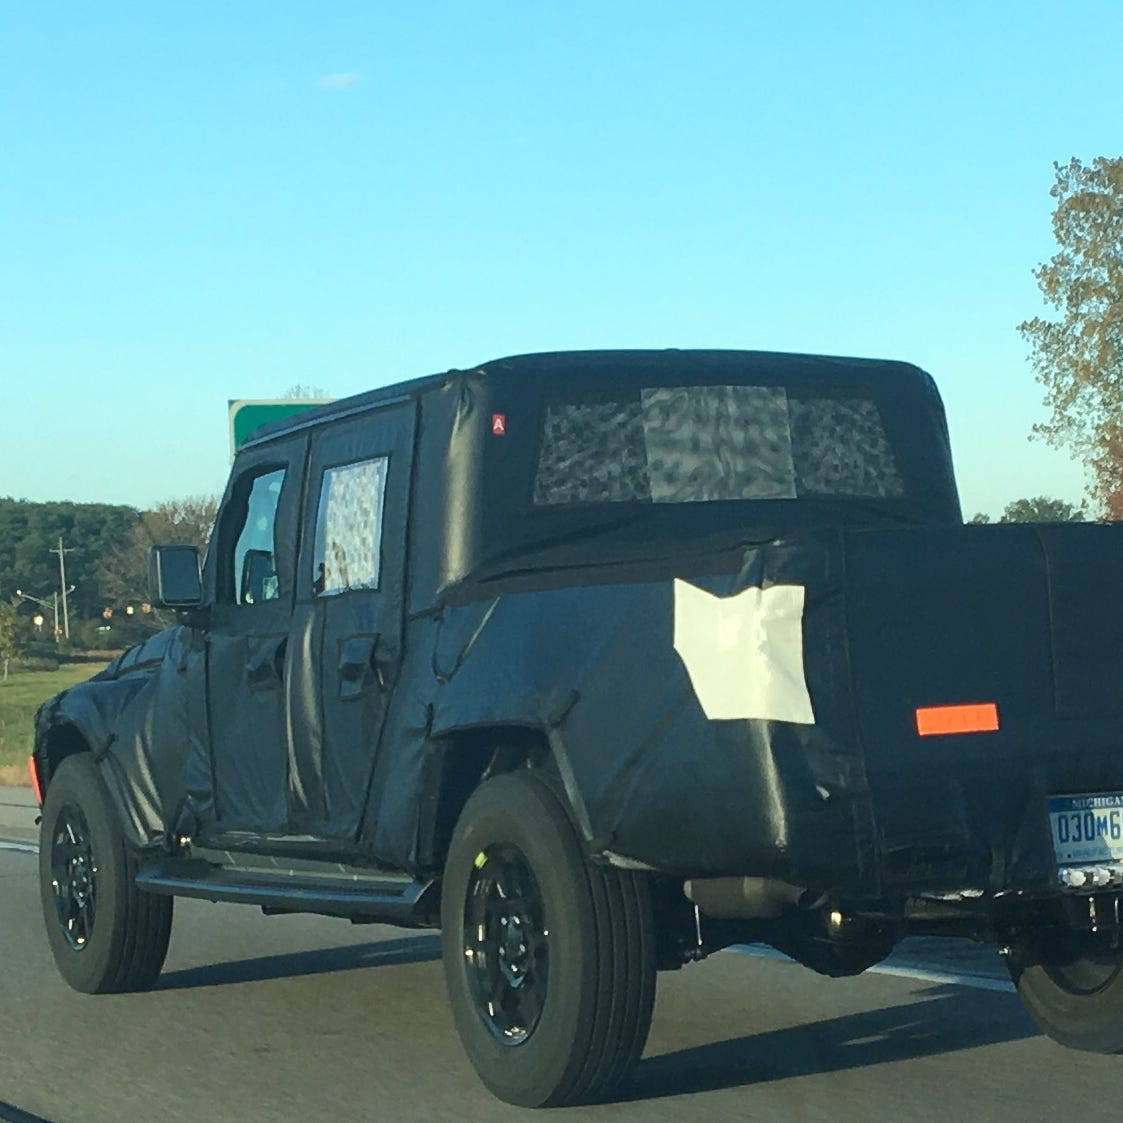 Top secret Jeep Scrambler spotted on I-94